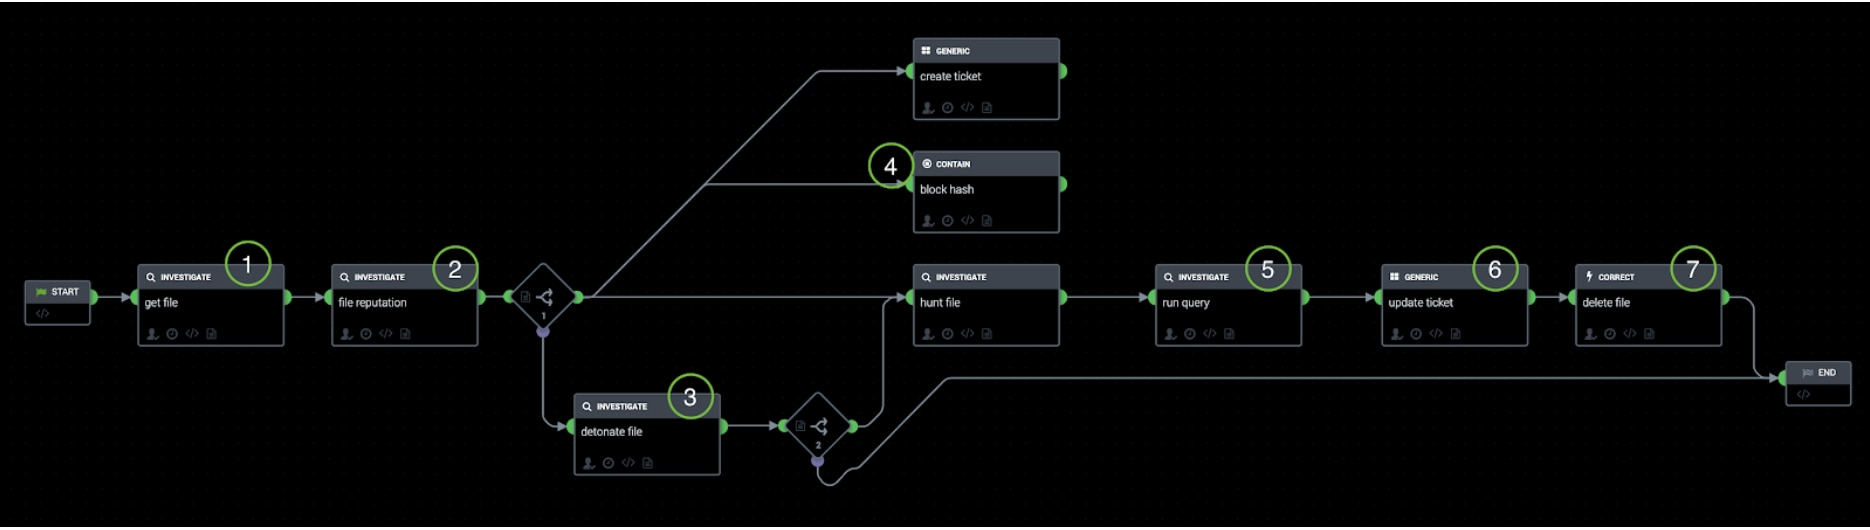 Playbook in Splunk Phantom